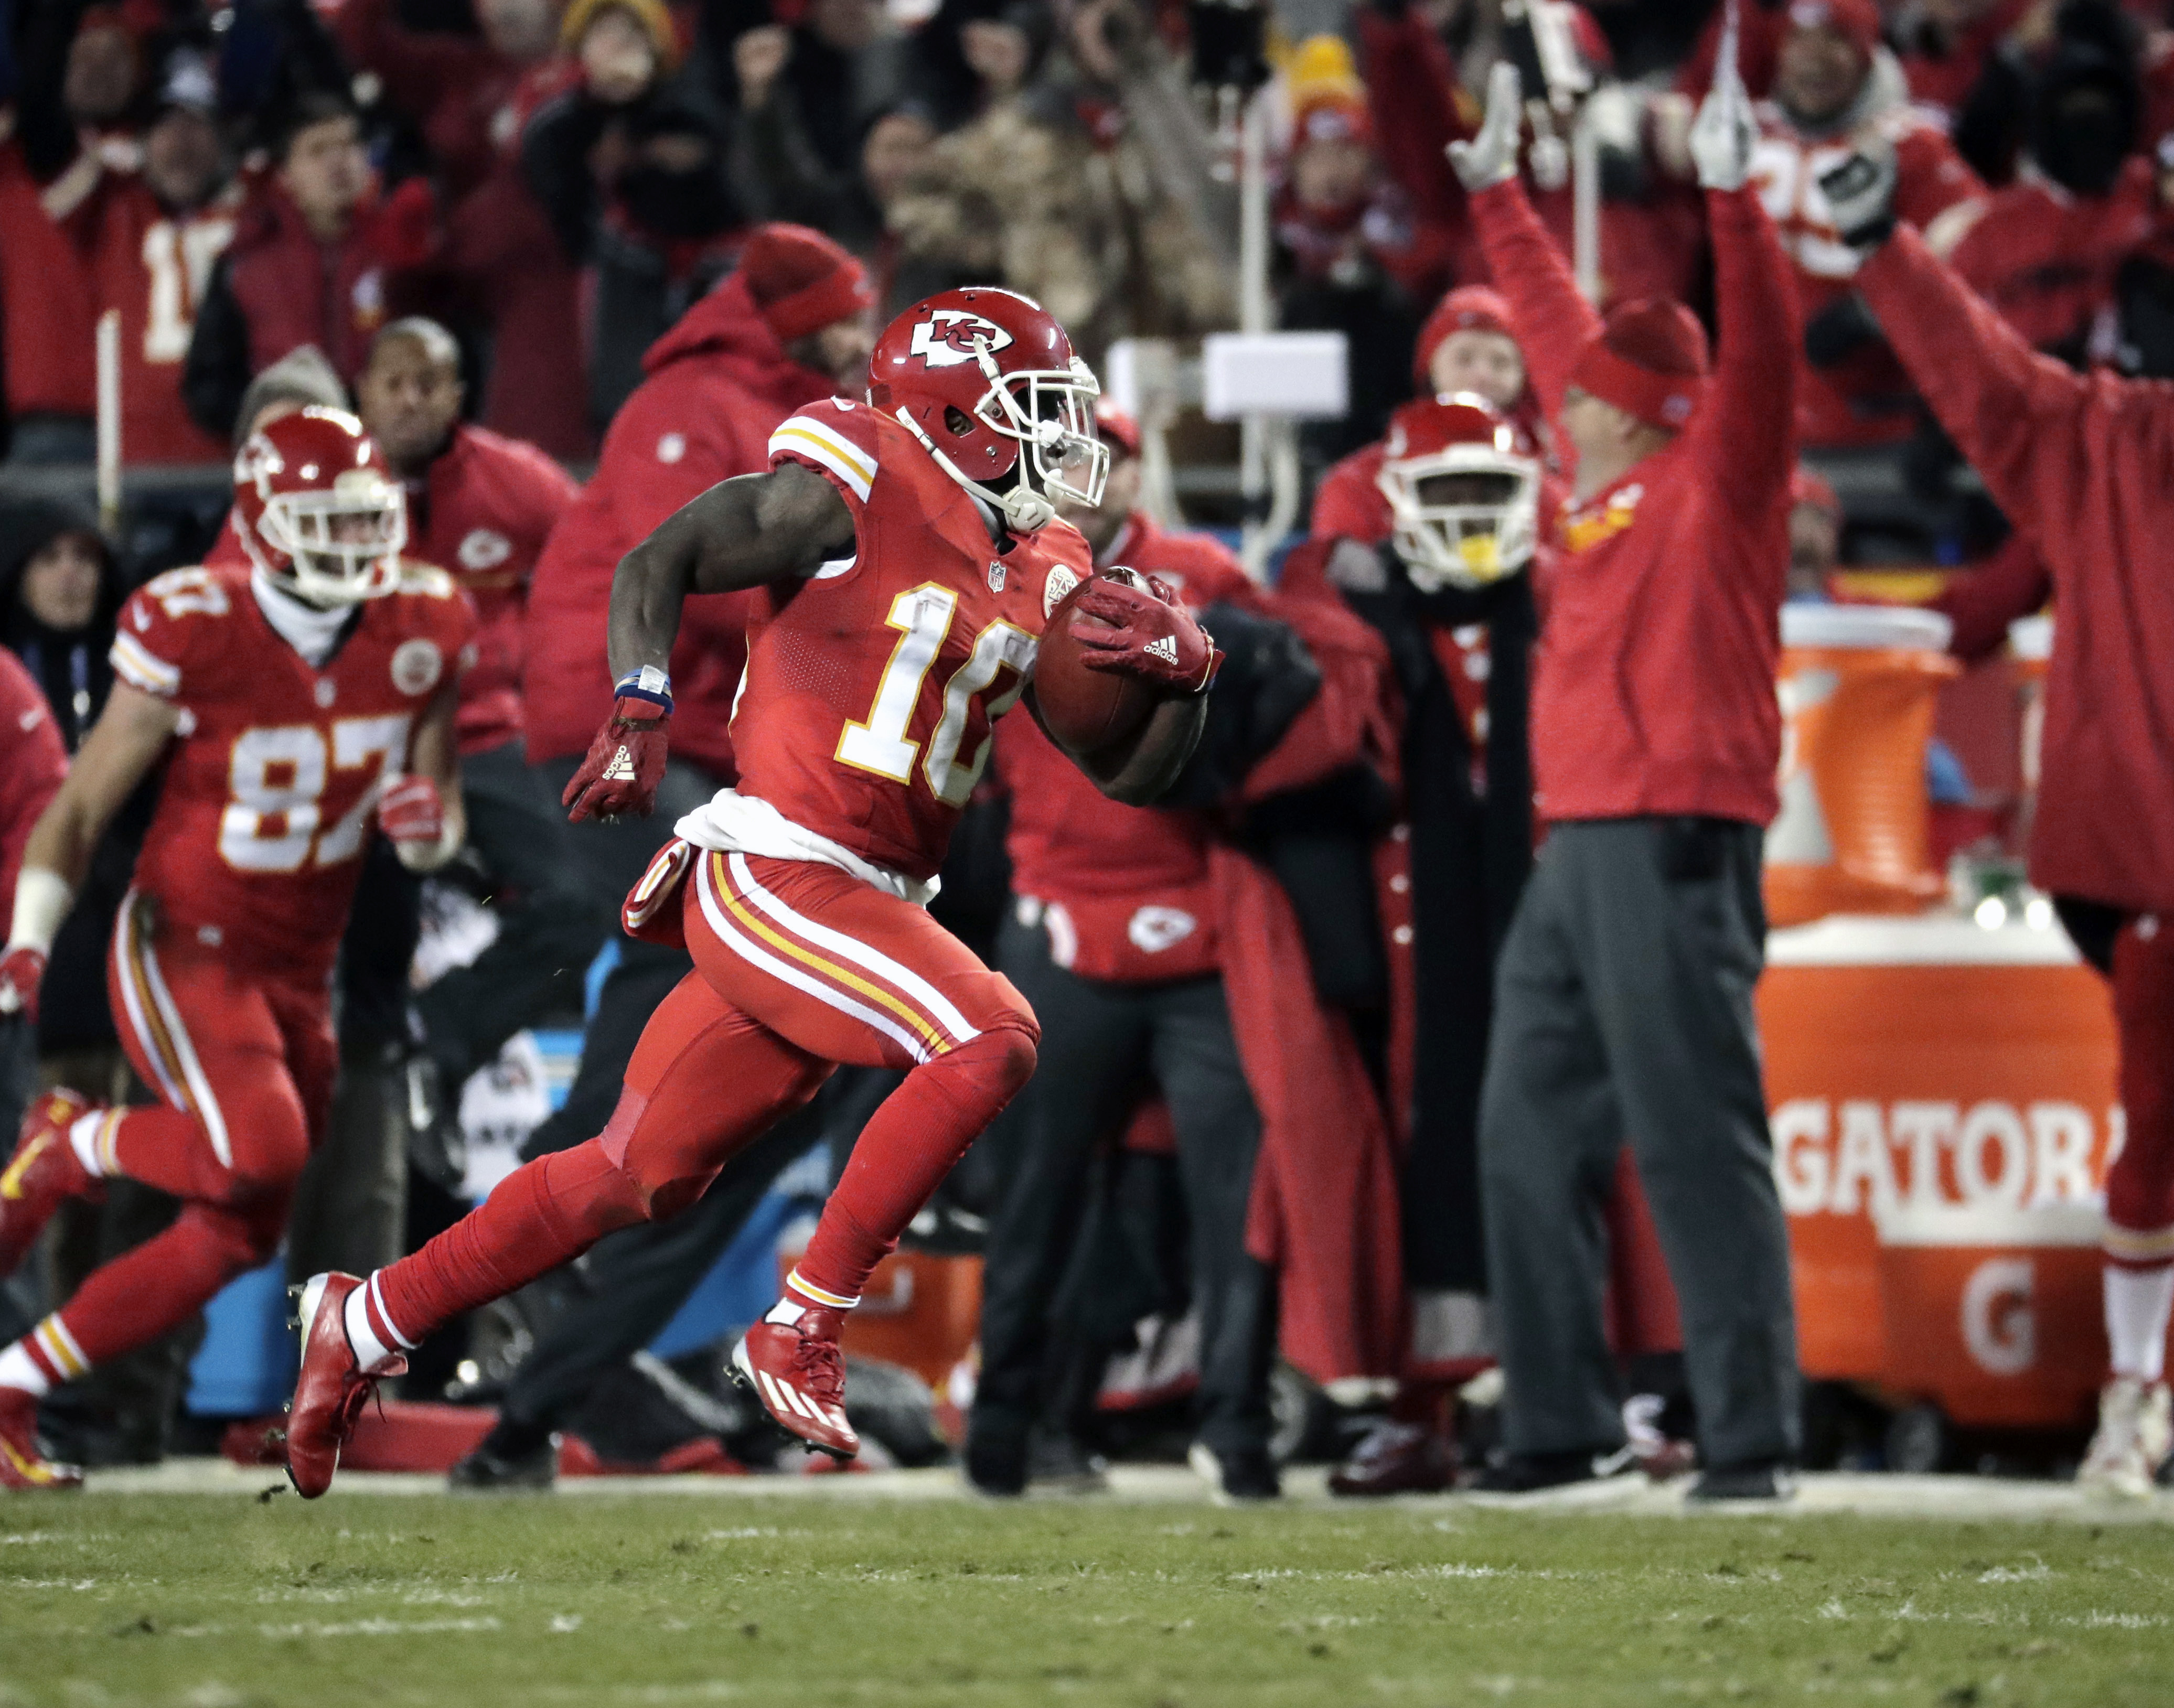 FILE - In this Dec. 8, 2016, file photo, Kansas City Chiefs wide receiver Tyreek Hill (10) returns a kickoff ball for a touchdown during the first half of an NFL football game against the Oakland Raiders in Kansas City, Mo. After watching Kansas City Chie